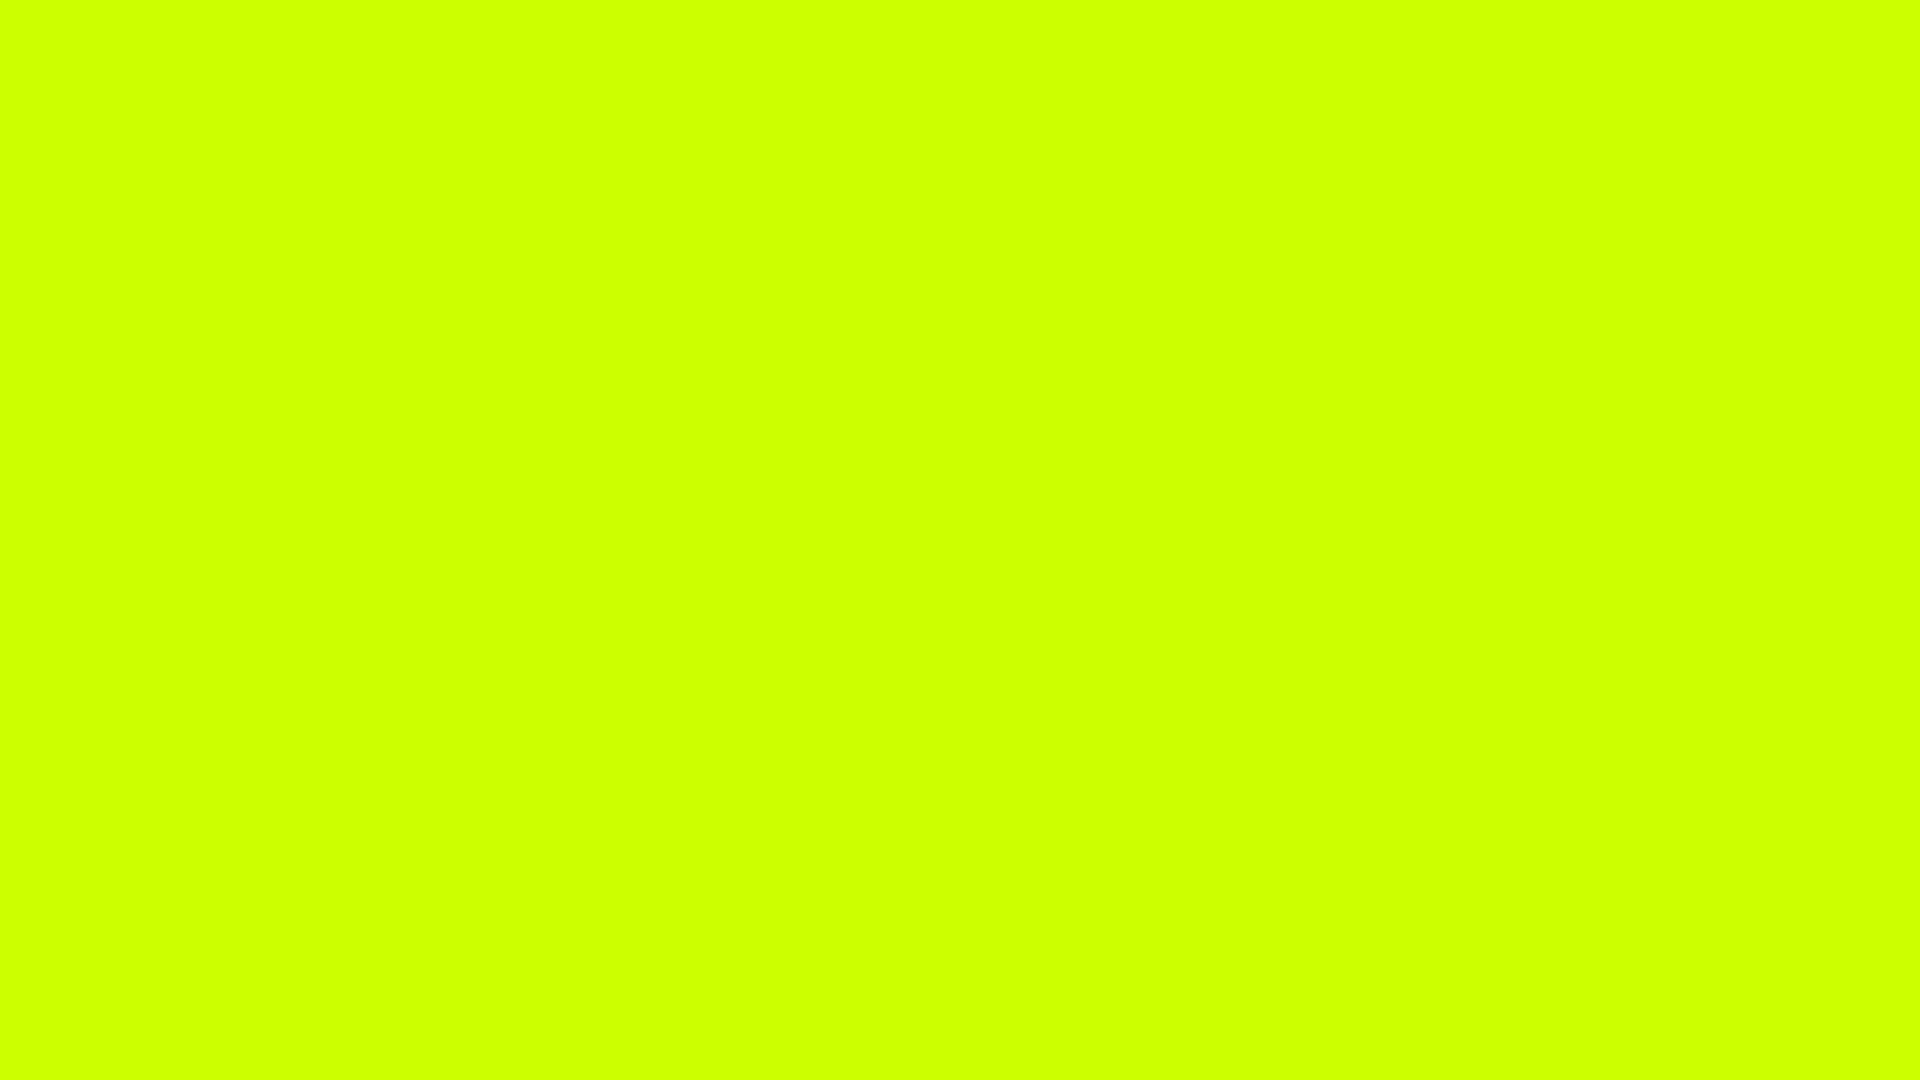 1920x1080 Fluorescent Yellow Solid Color Background